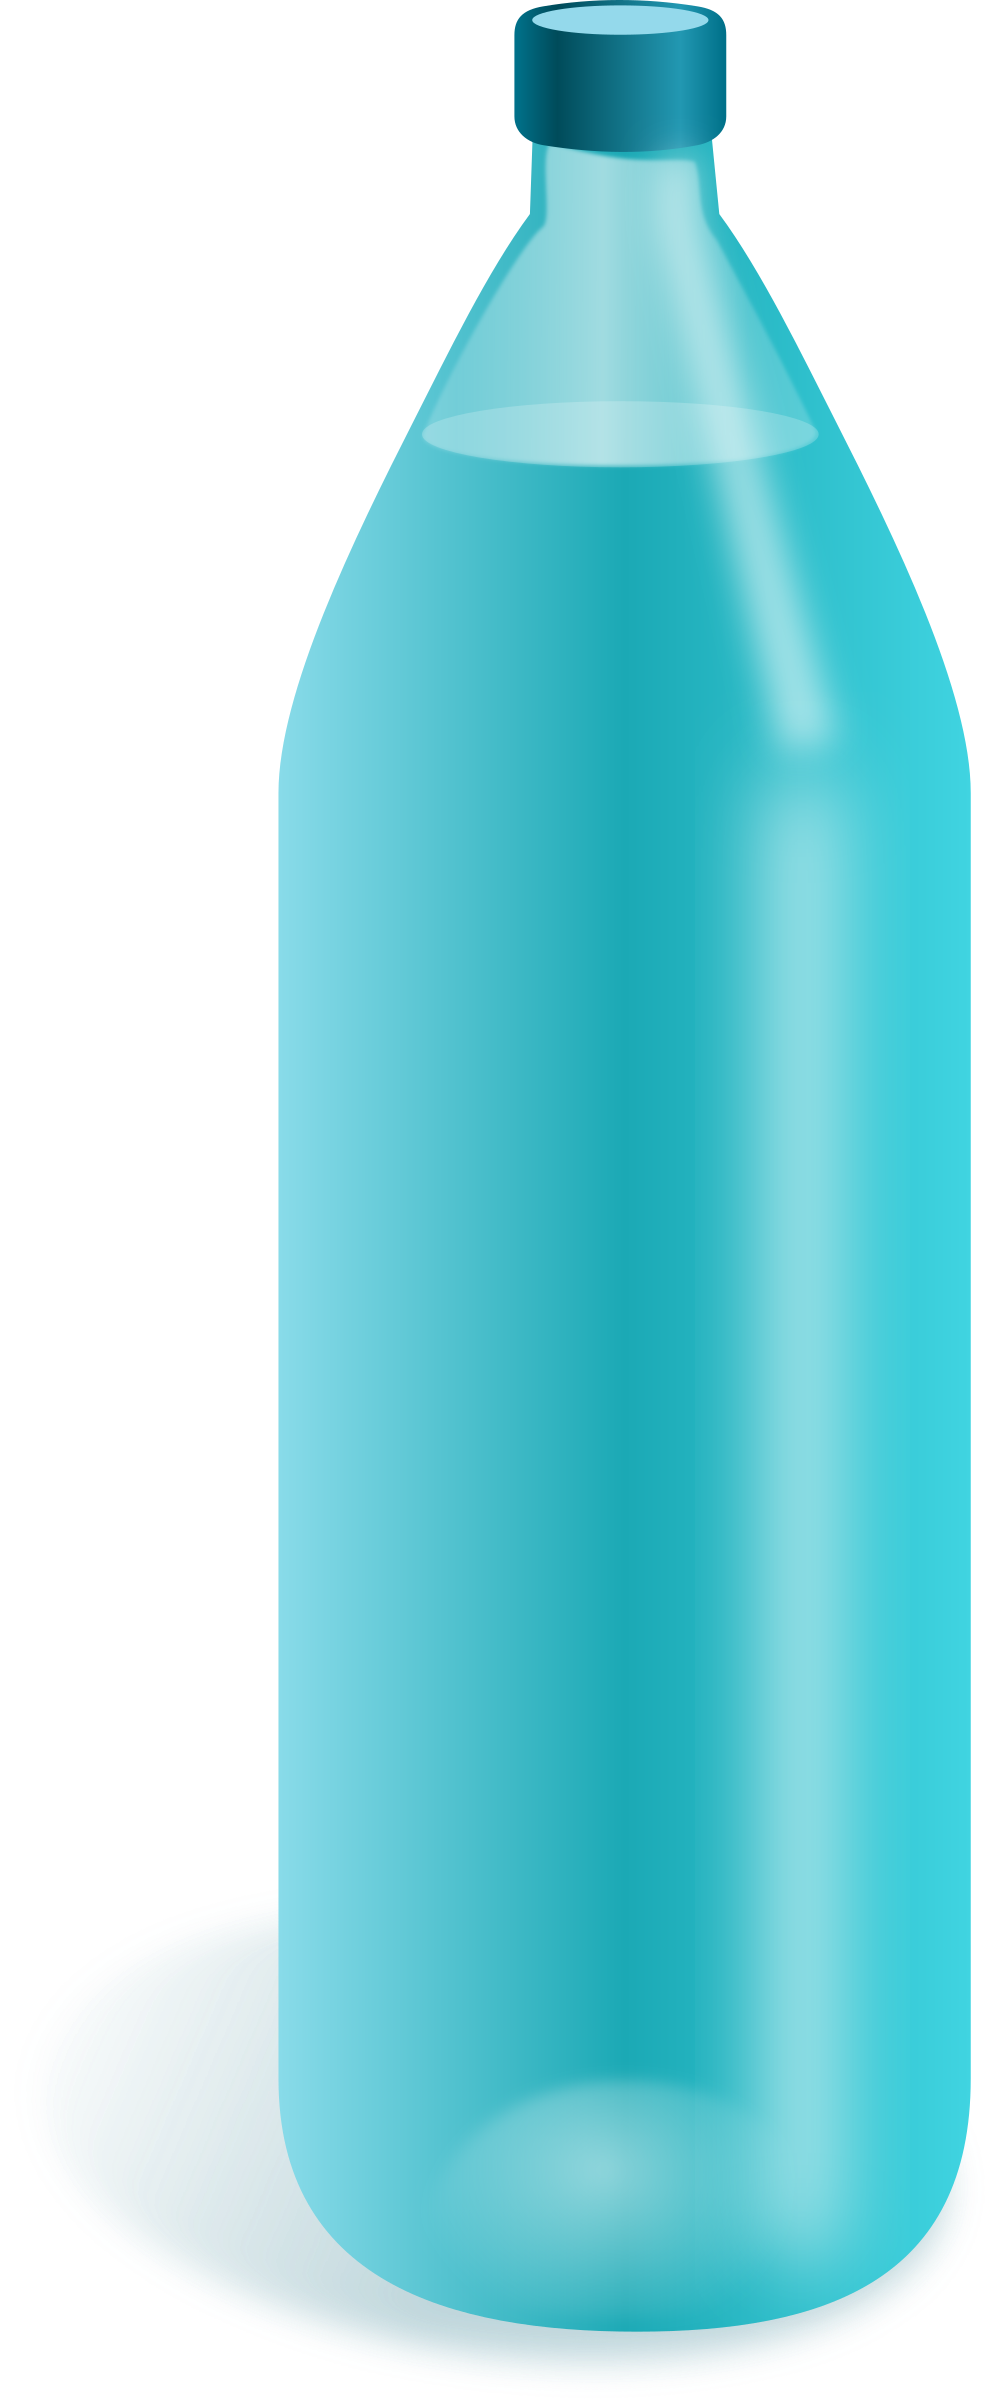 Image . Bottle water png